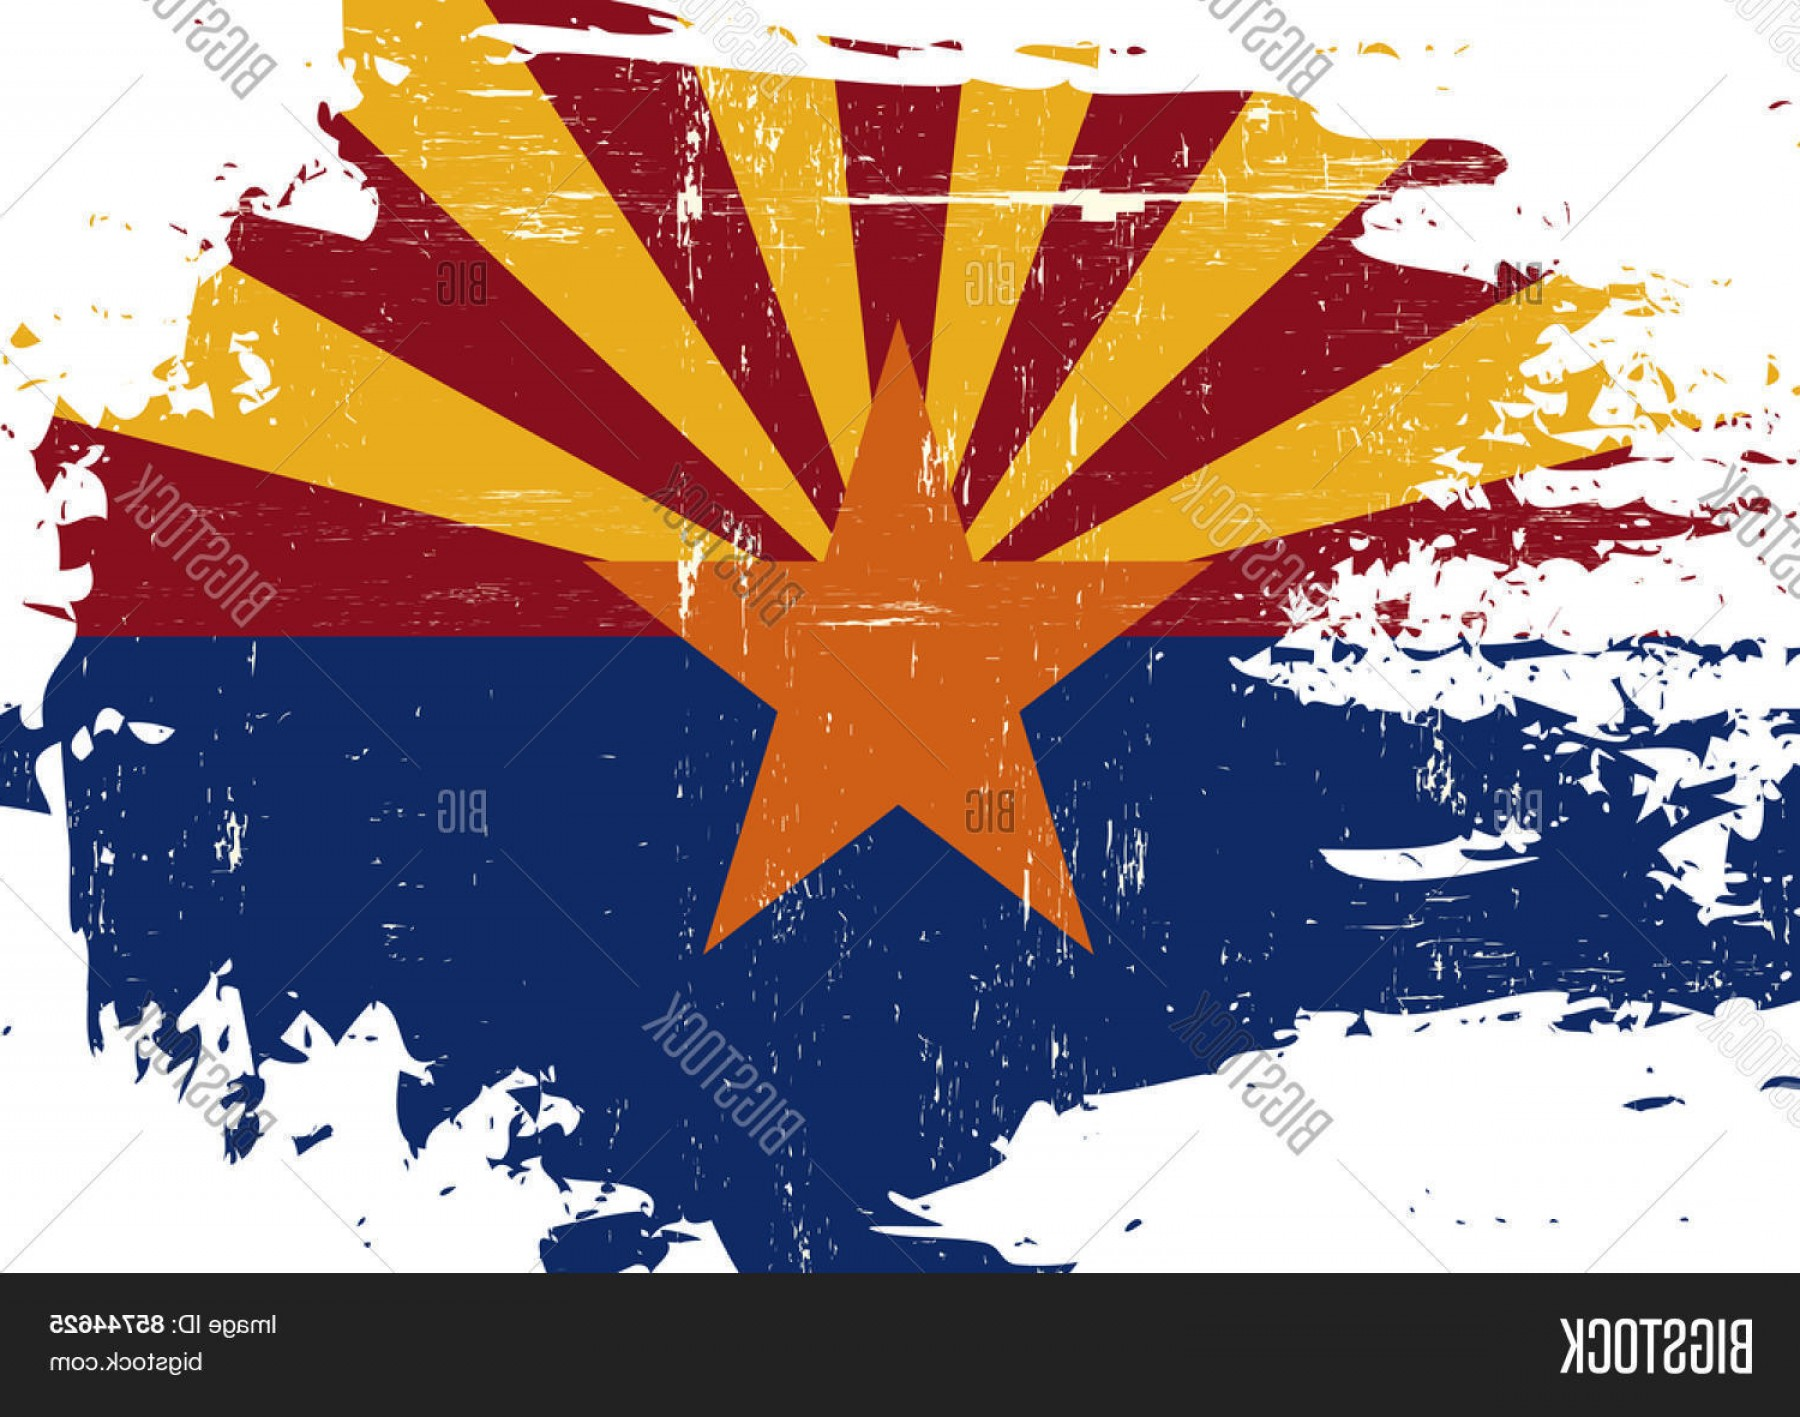 Arizona Flag Vector: Stock Vector Scratched Arizona Flag A Flag Of Arizona With A Grunge Texture